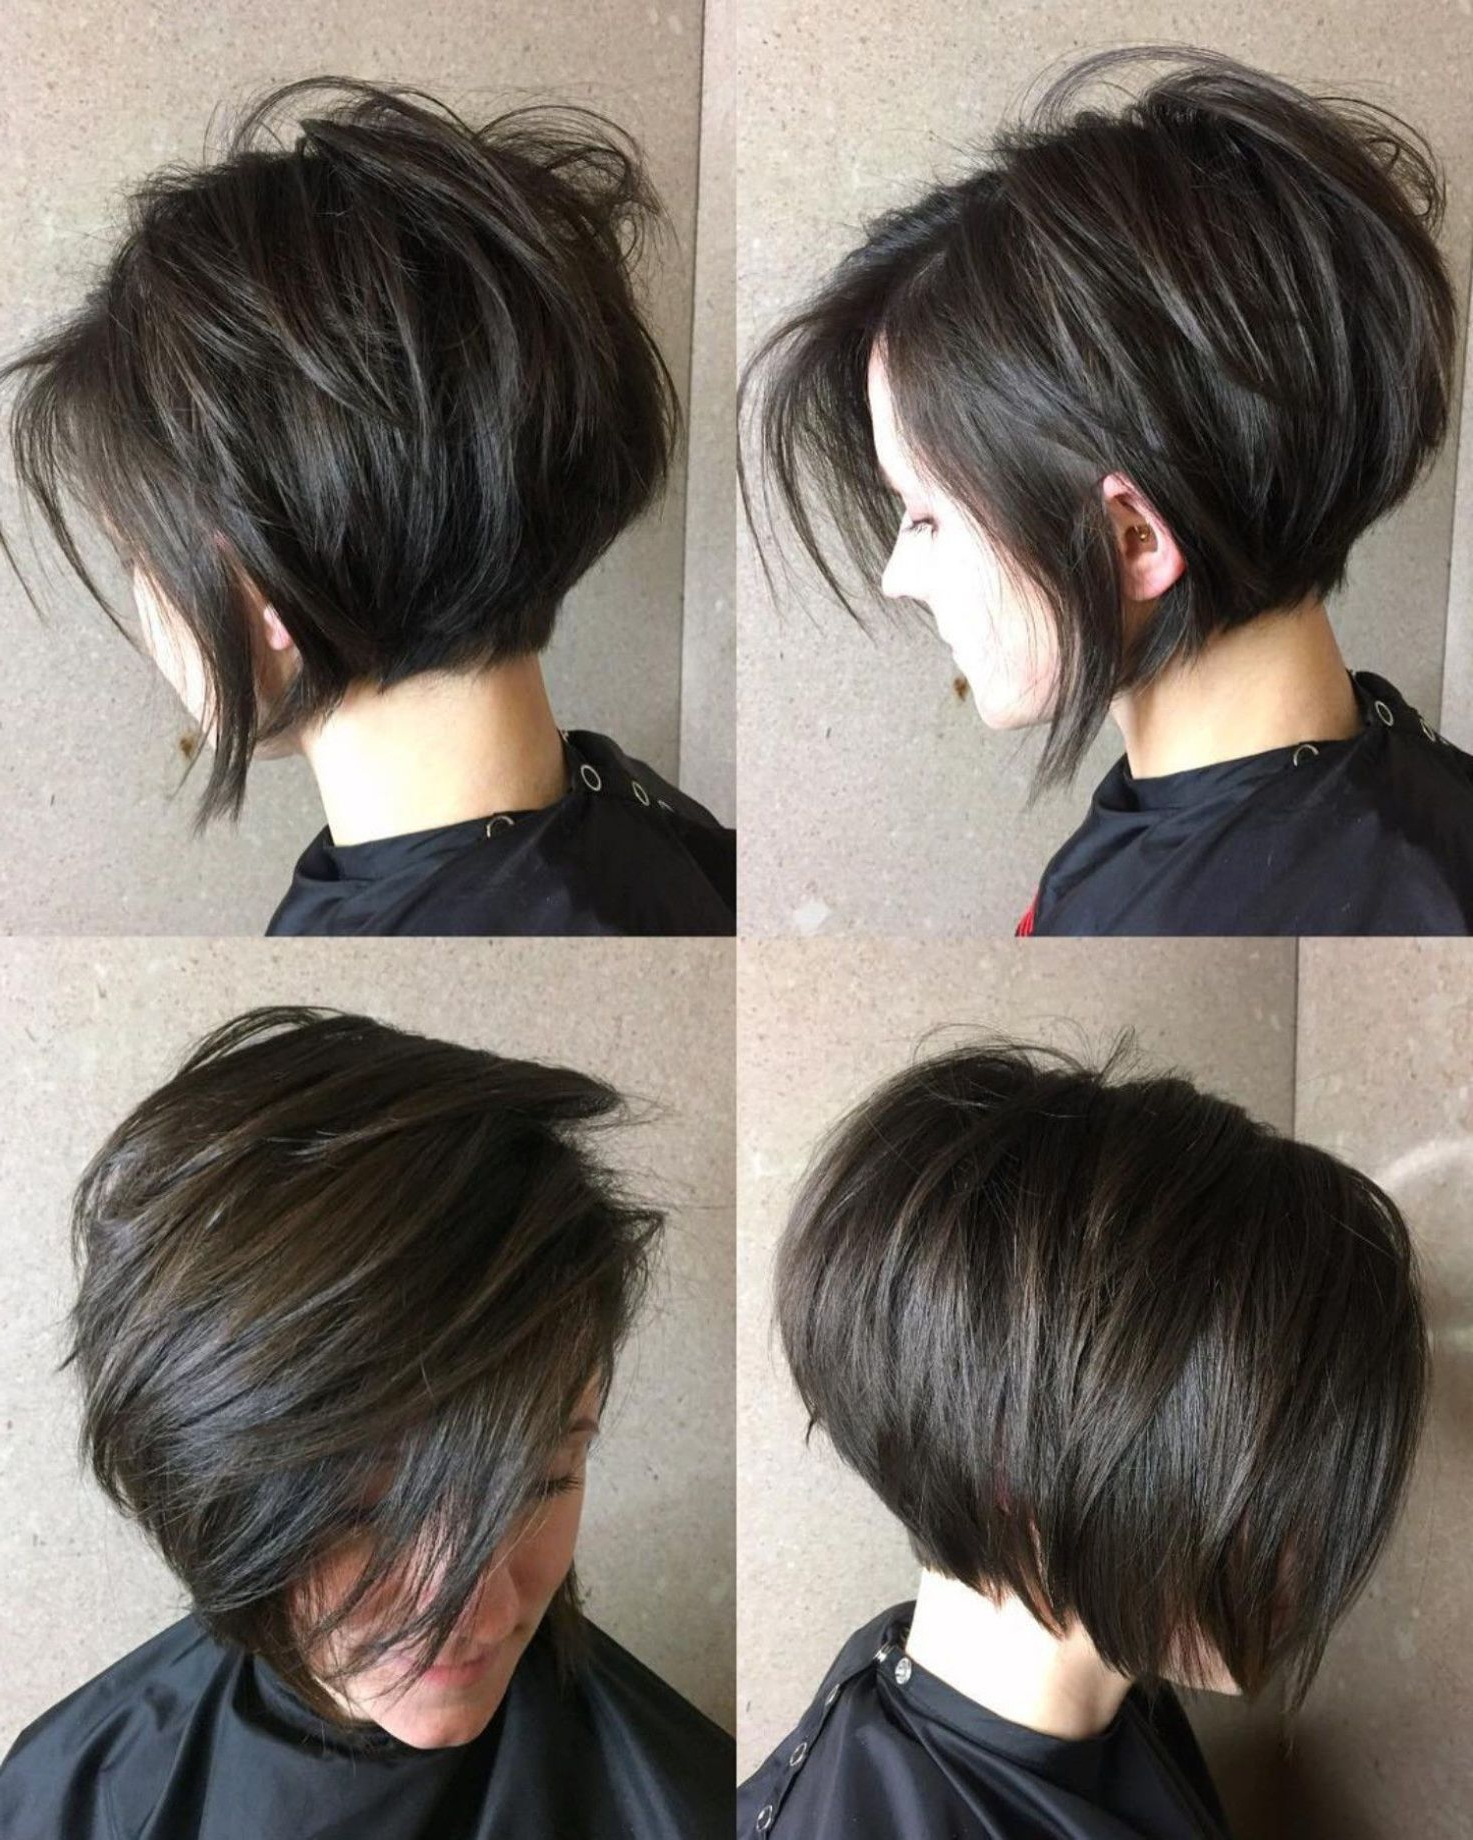 70 Cute And Easy To Style Short Layered Hairstyles In 2019 Pertaining To Voluminous Short Bob Haircuts (Gallery 3 of 20)